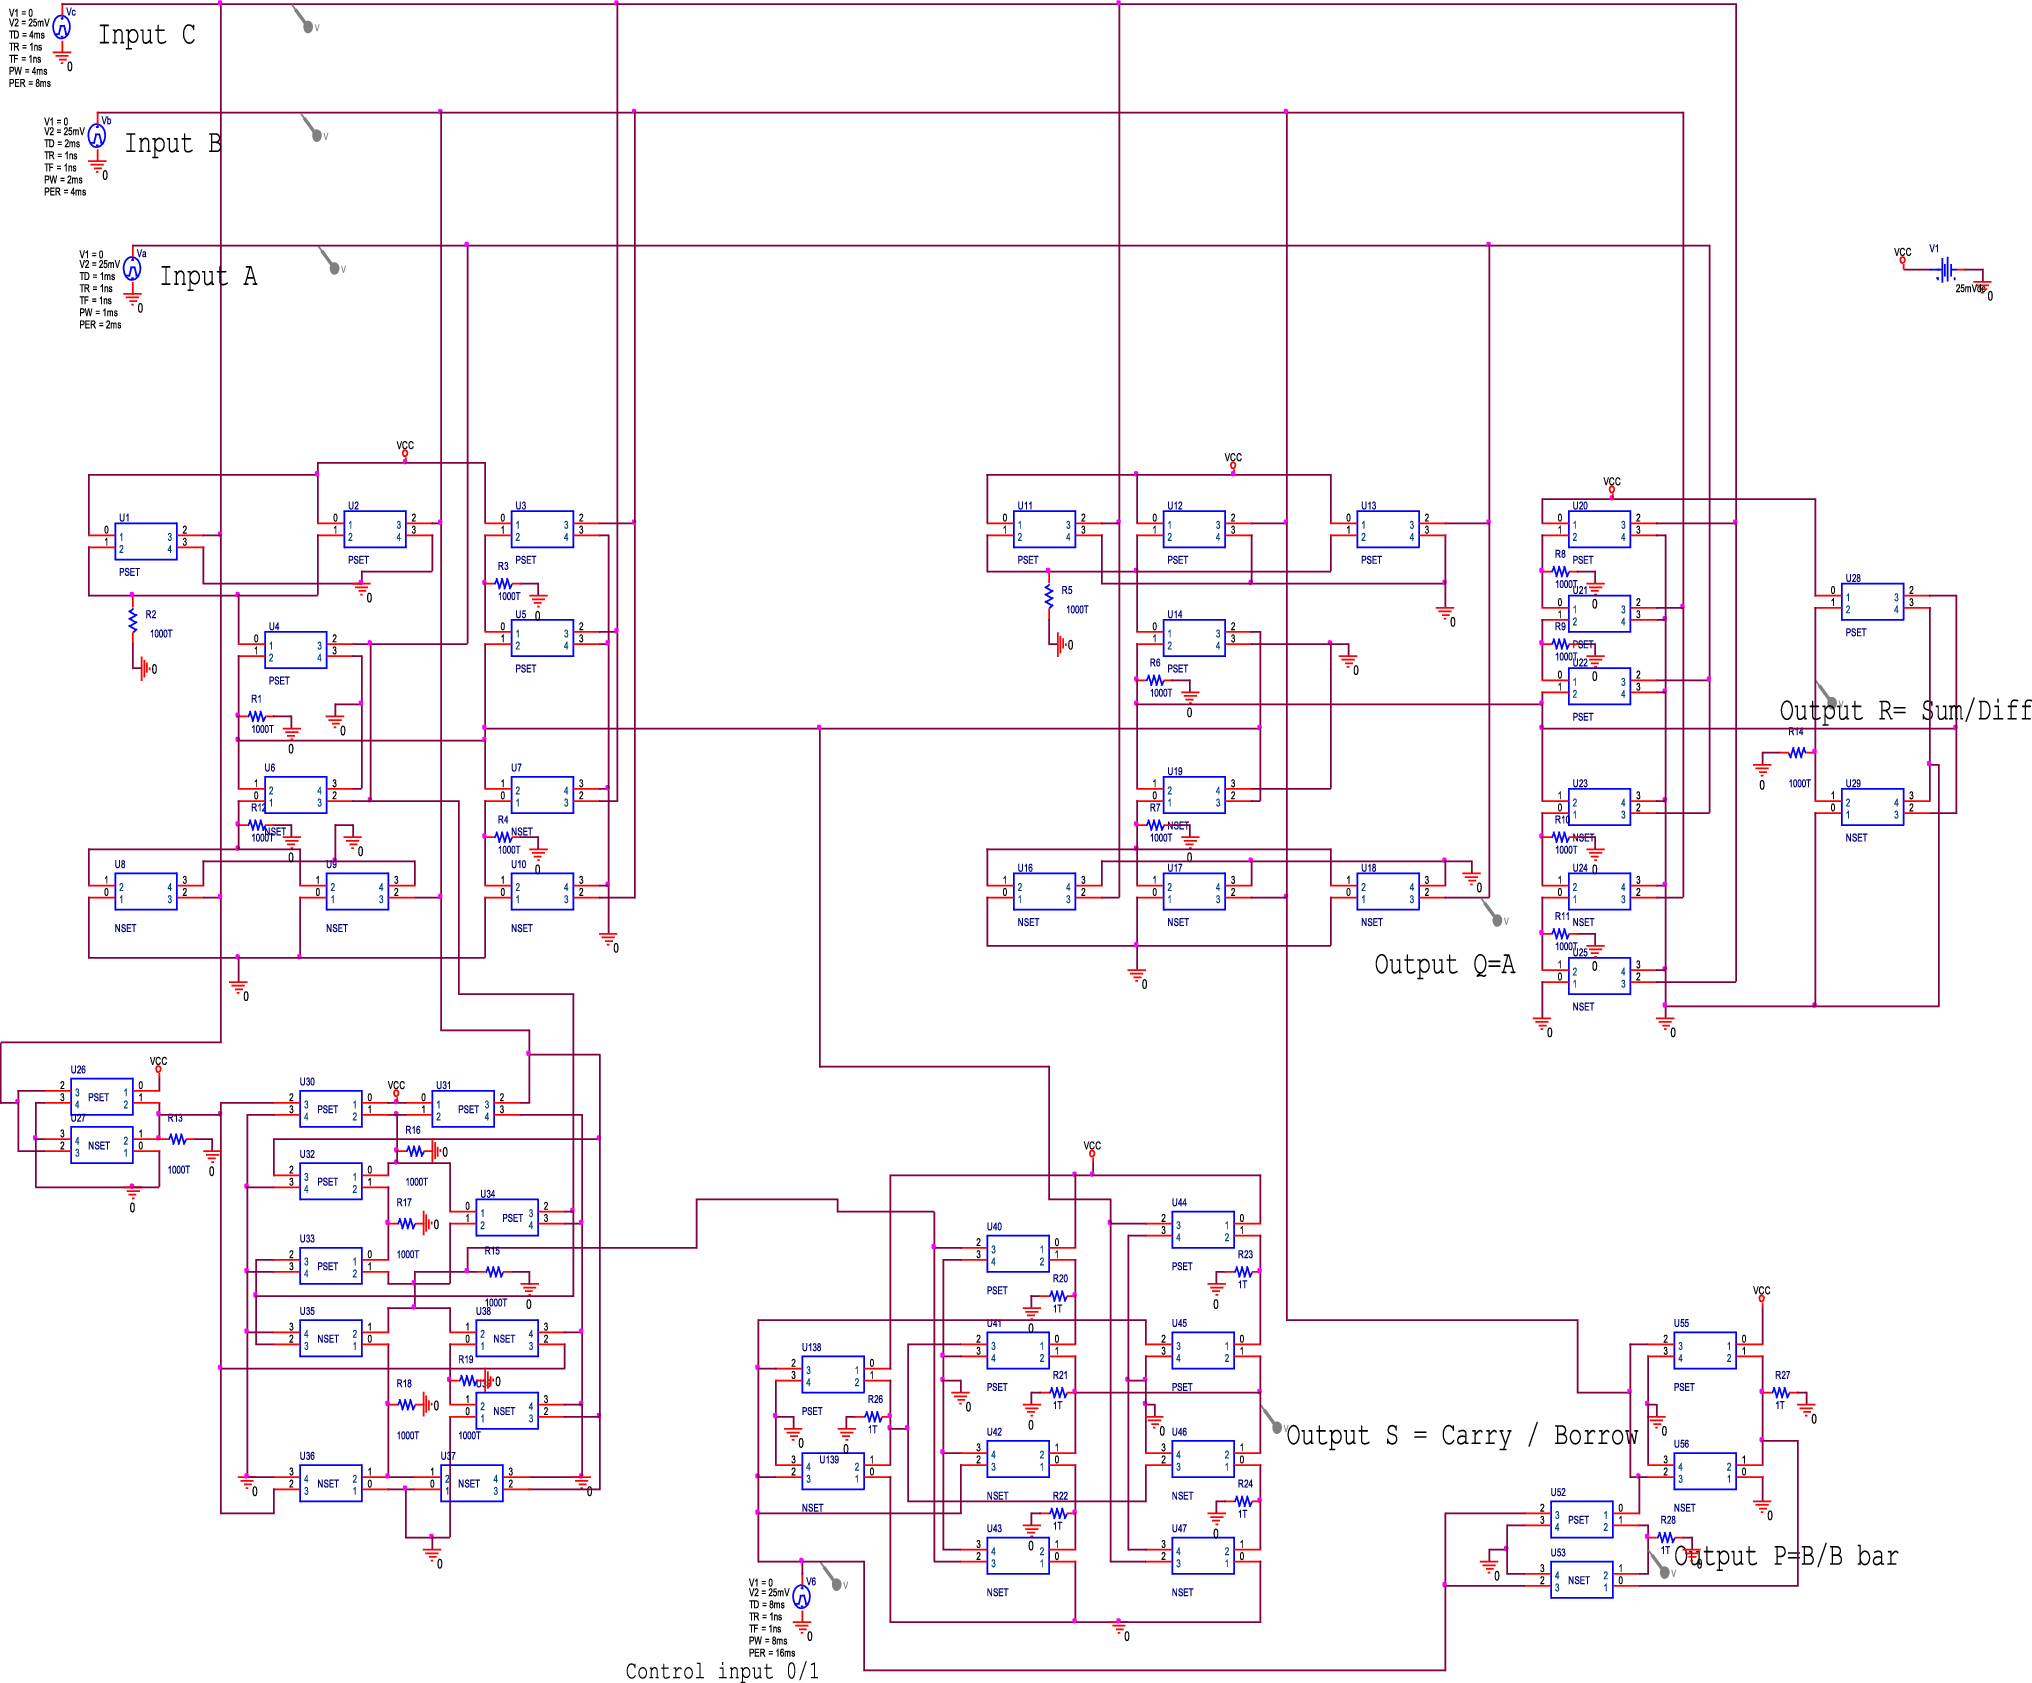 Design And Analysis Of Low Power 8 Bit Alu On Reversible Logic For Block Diagram Composition The Full Adder B Top Level Fig 17 1